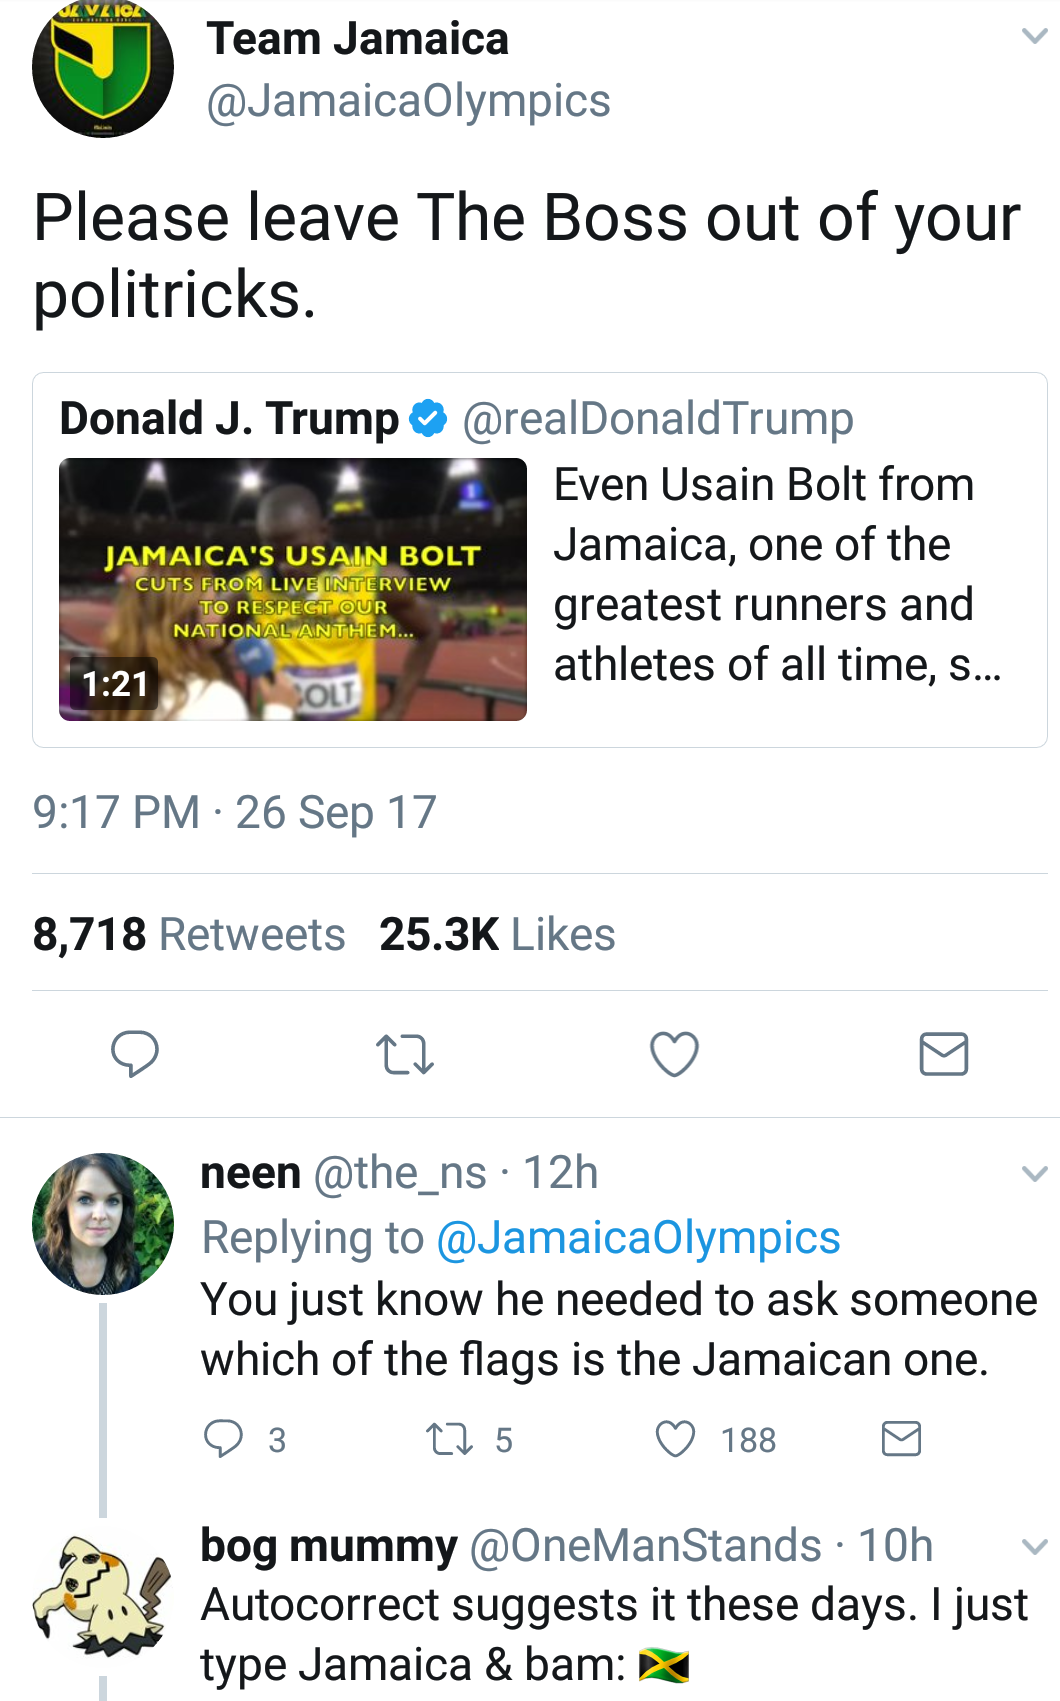 Donald Trump tries to use Usain Bolt